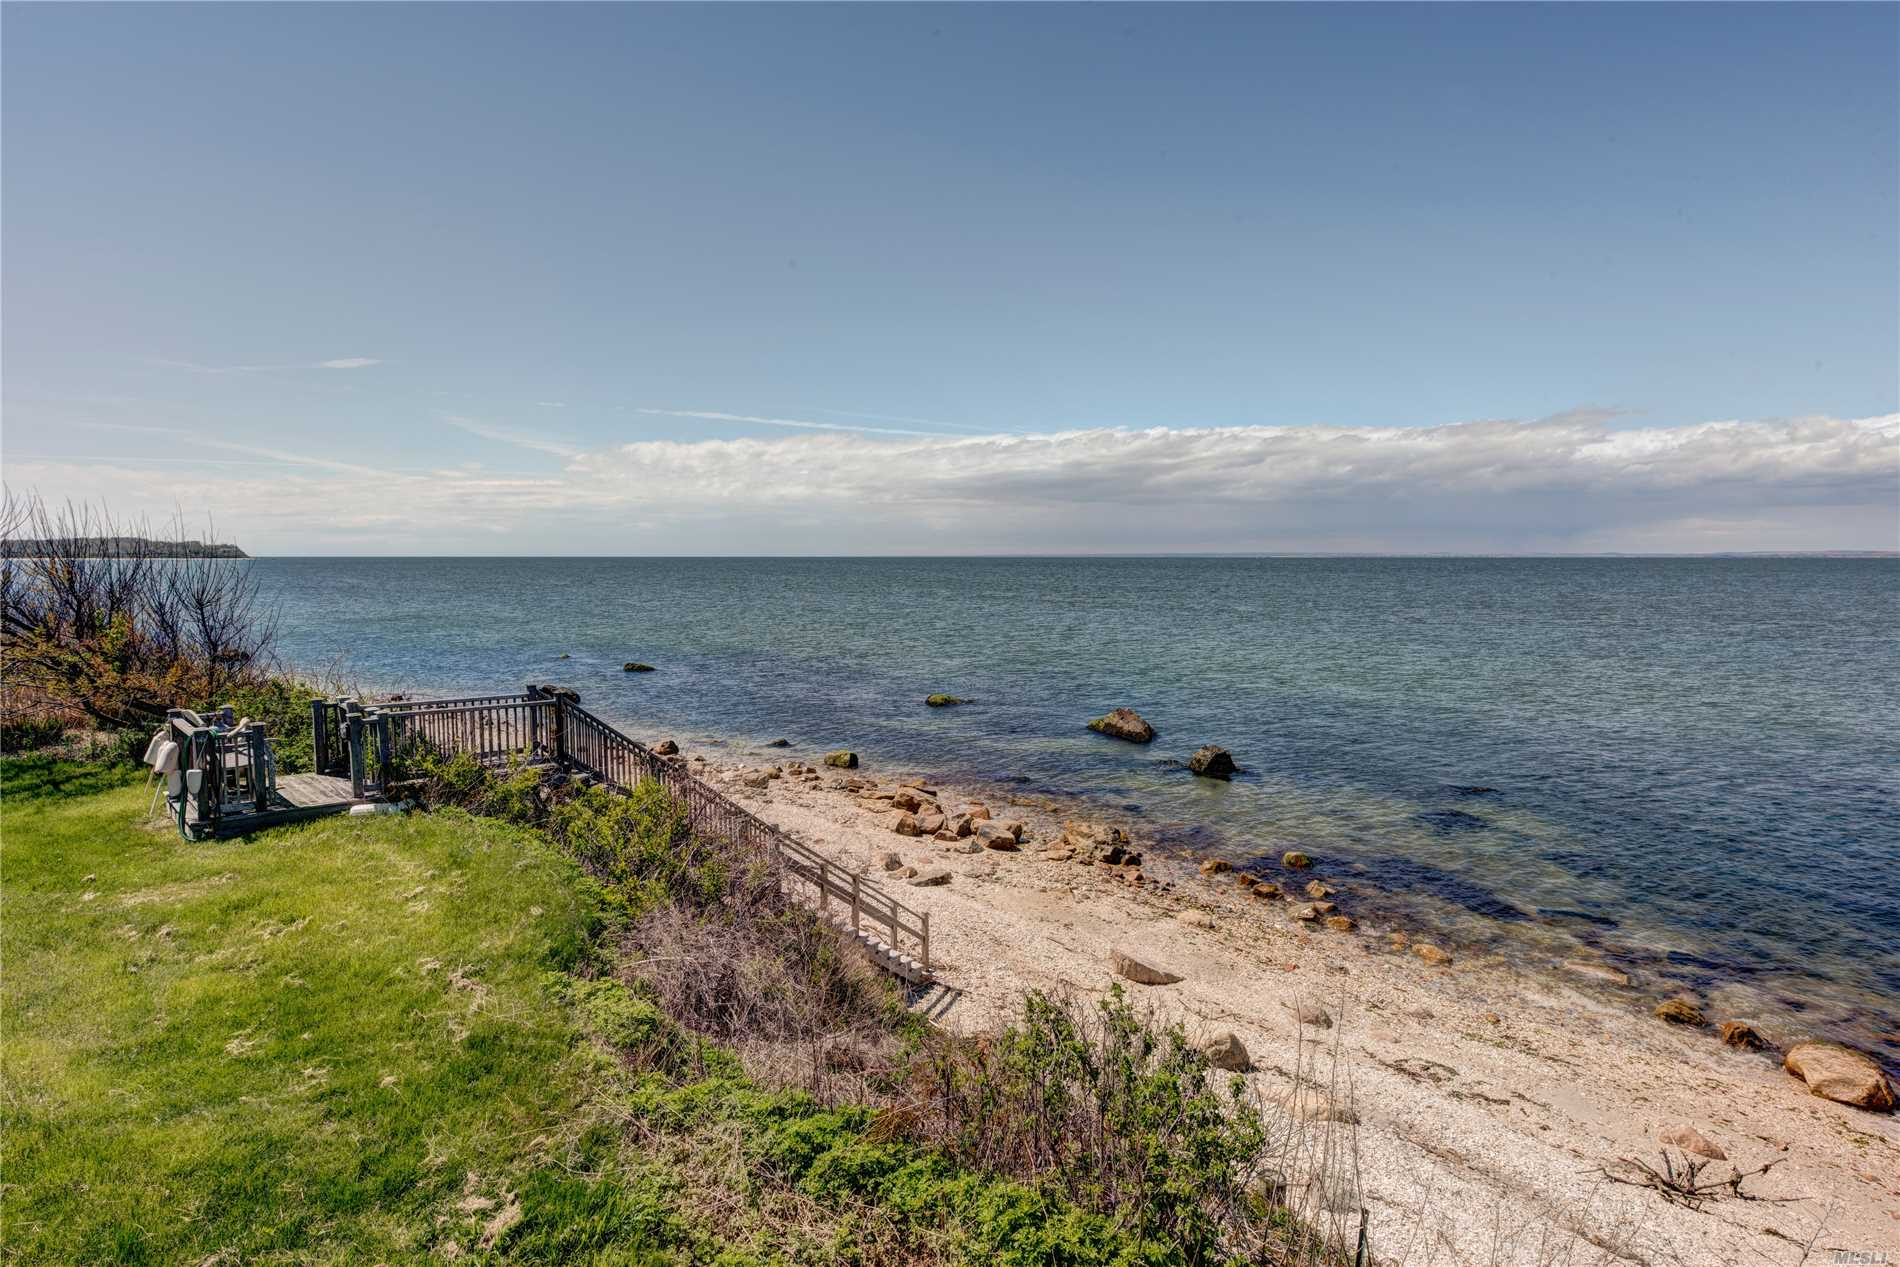 Nantucket-Mint 4 Bedroom, 4 Bath Sound Front Estate On 1 Plus Acres And In-Ground Pool, Lush Waterfront Gardens And A Putting Green. This Home Is Well Appointed With Gorgeous Furnishings, Chefs Kitchen, Large Living Room With Fireplace, Great Room, Den, Sunporch, And Large Seaside Pool With Wonderful Panoramic Views In All Directions. Perfect For Your Summer Vacation.